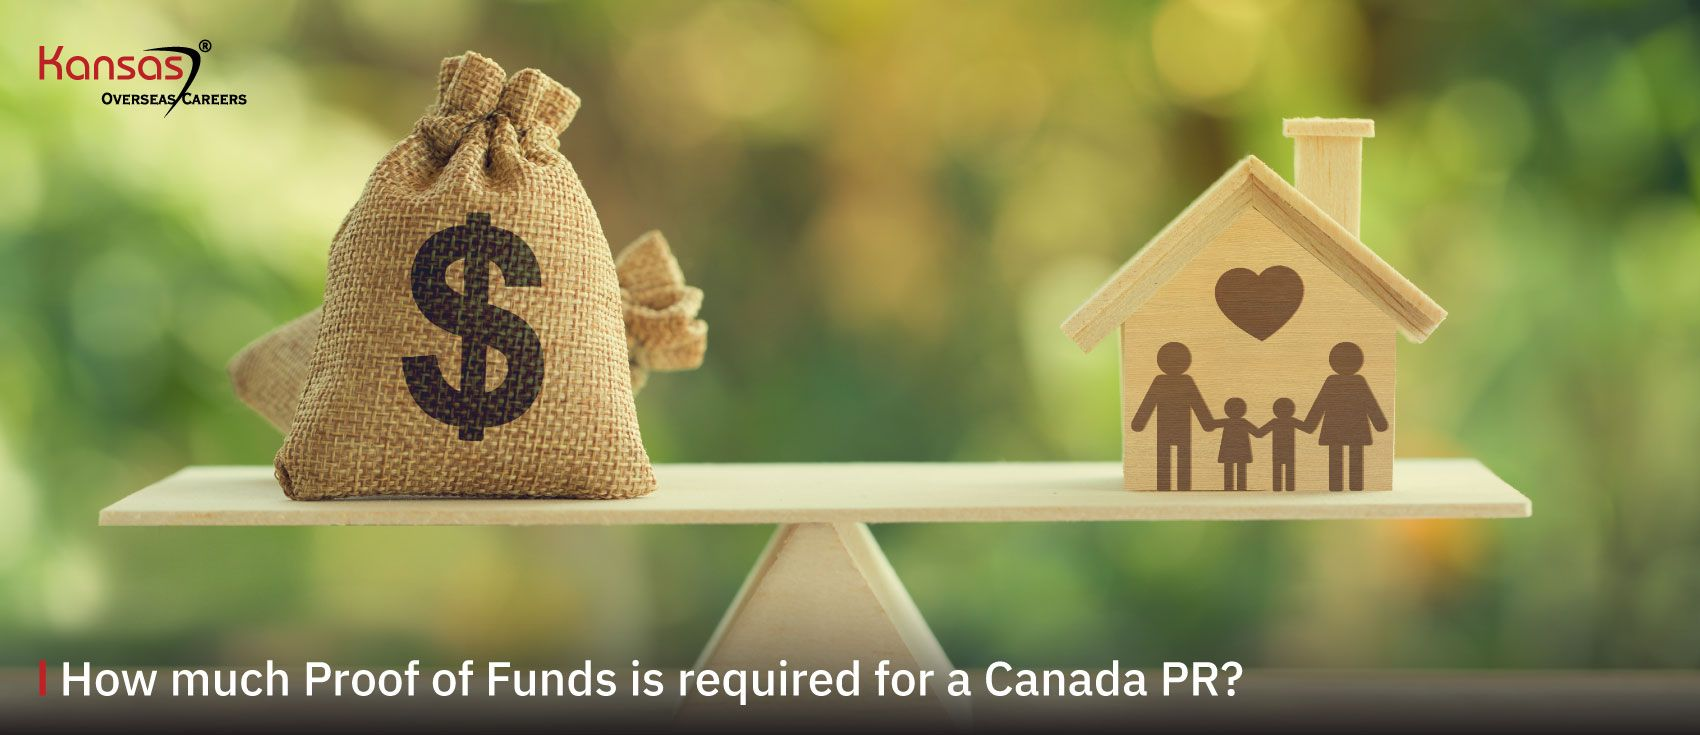 How-much-Proof-of-Funds-is-required-for-a-Canada-PR-